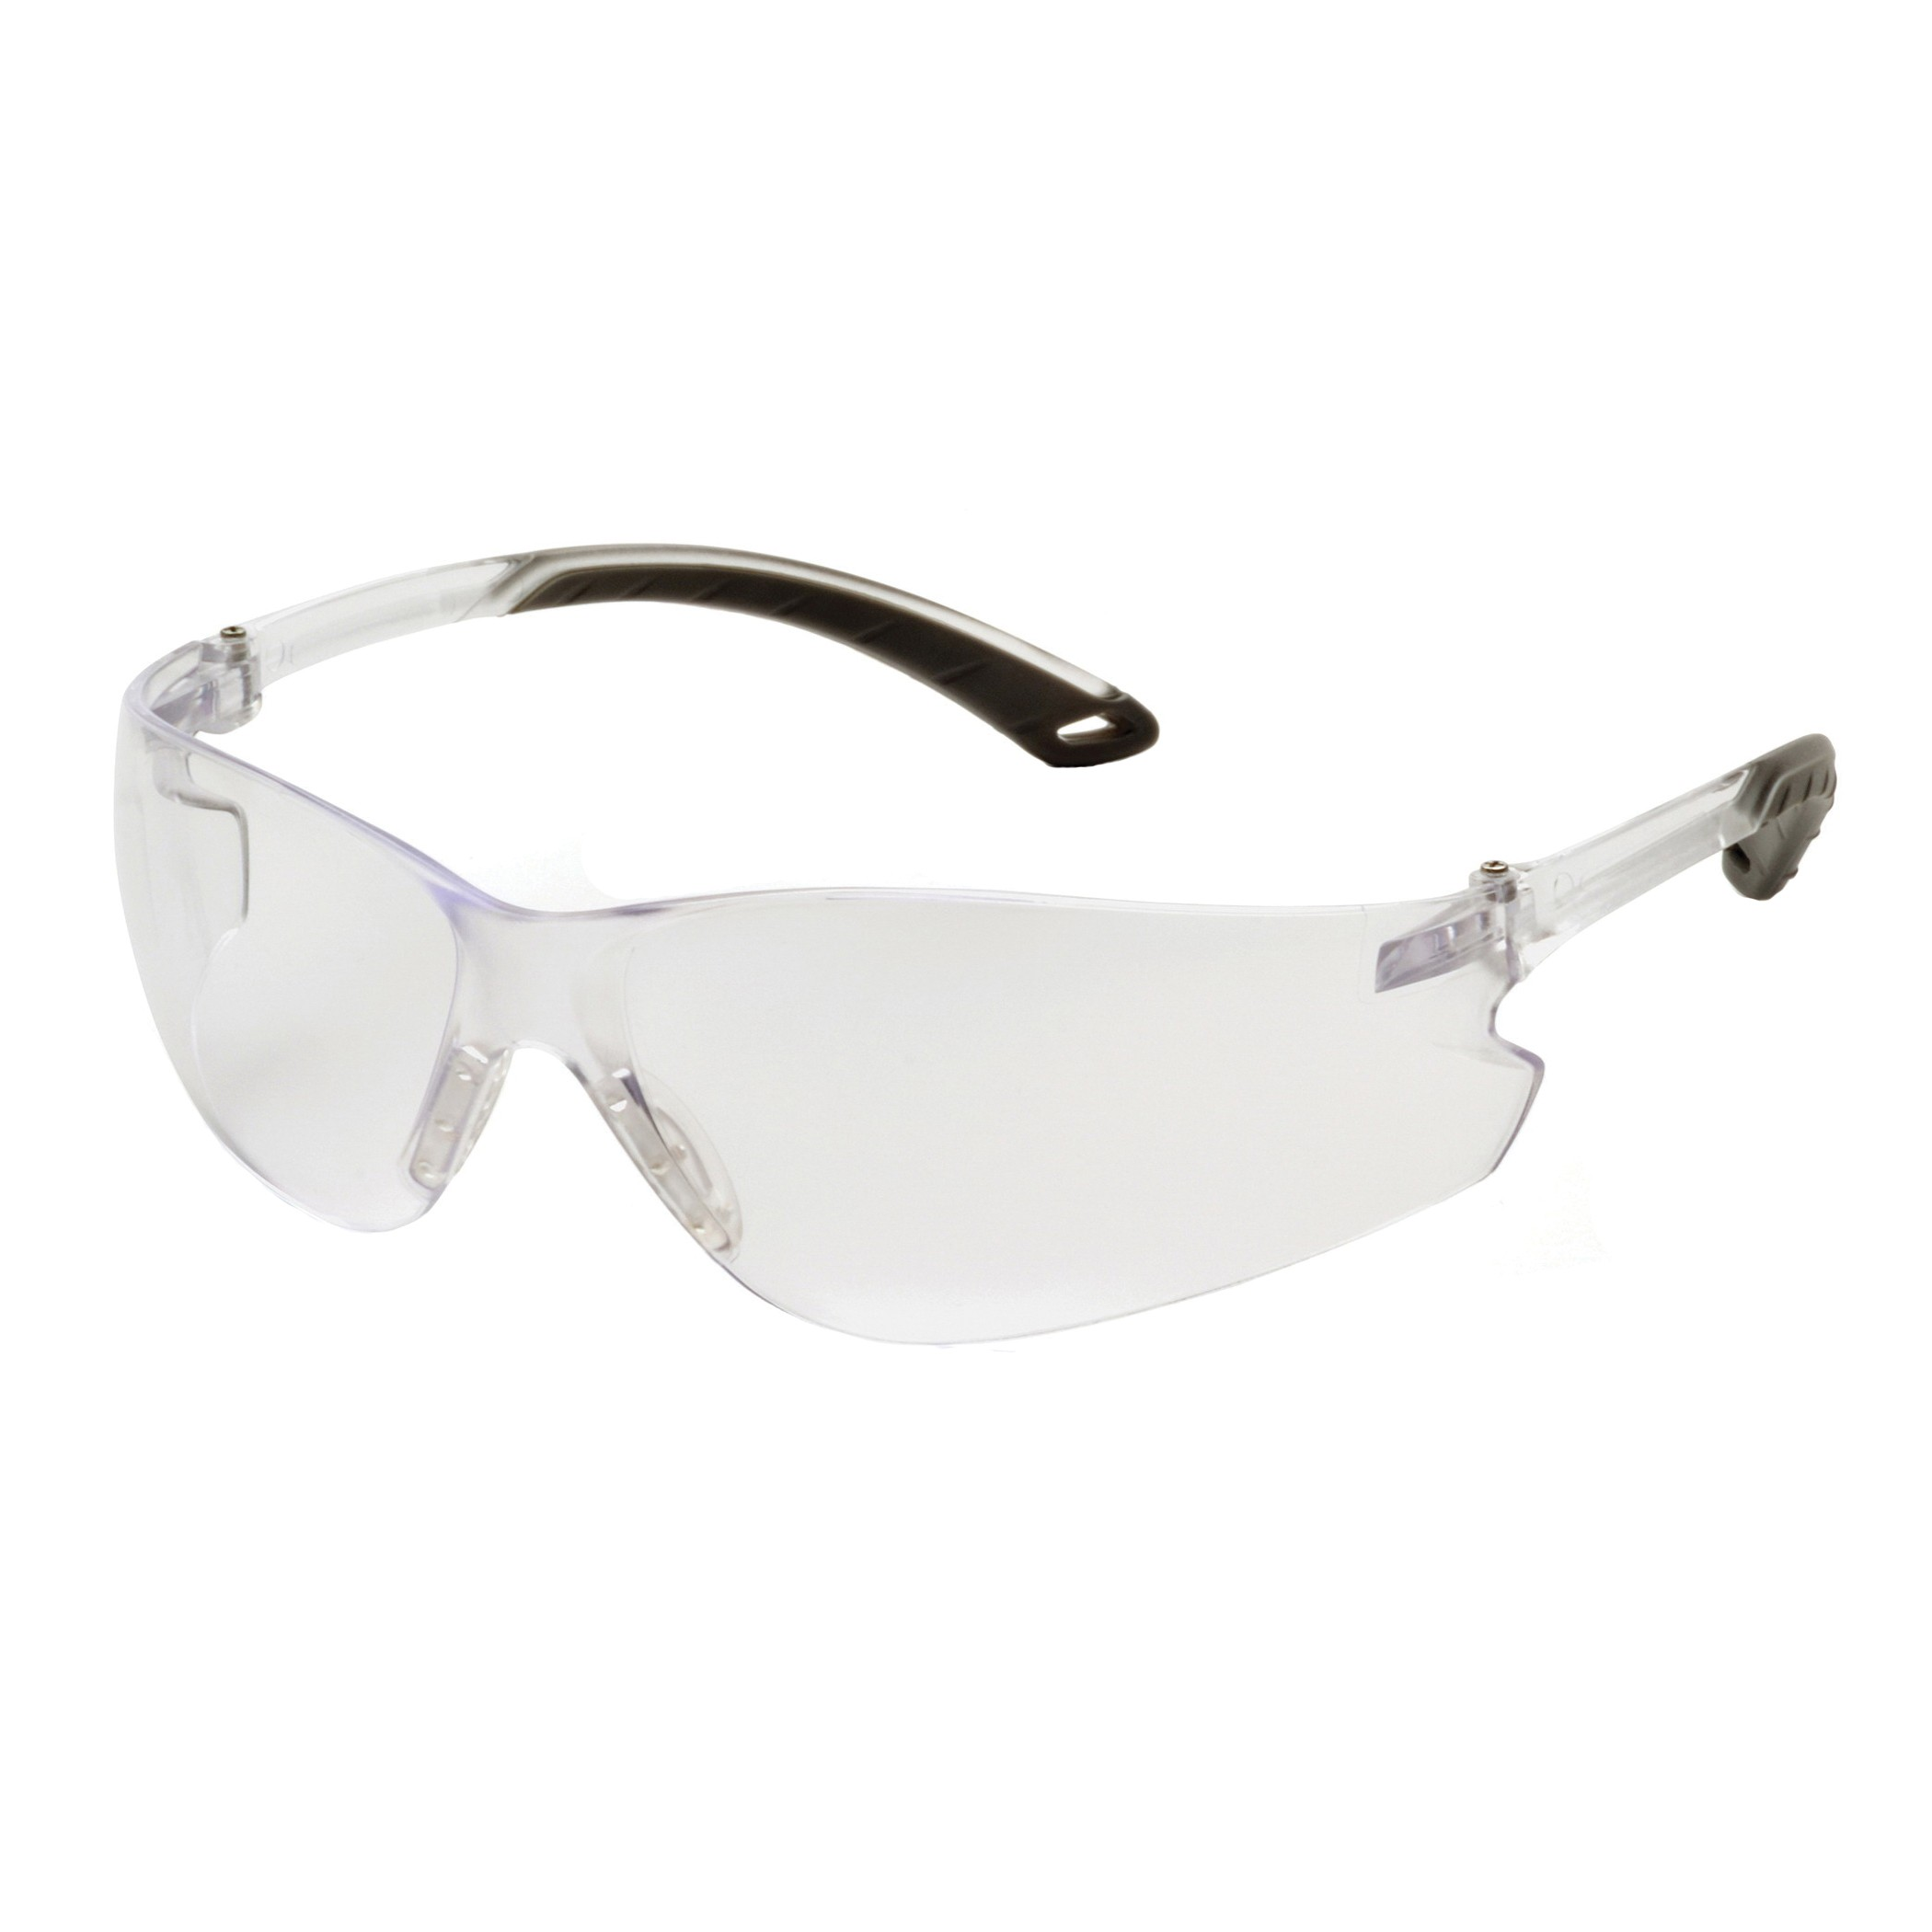 Pyramex® S5810S Light Weight Protective Glasses, Universal, Frameless, Scratch-Resistant Clear Lens